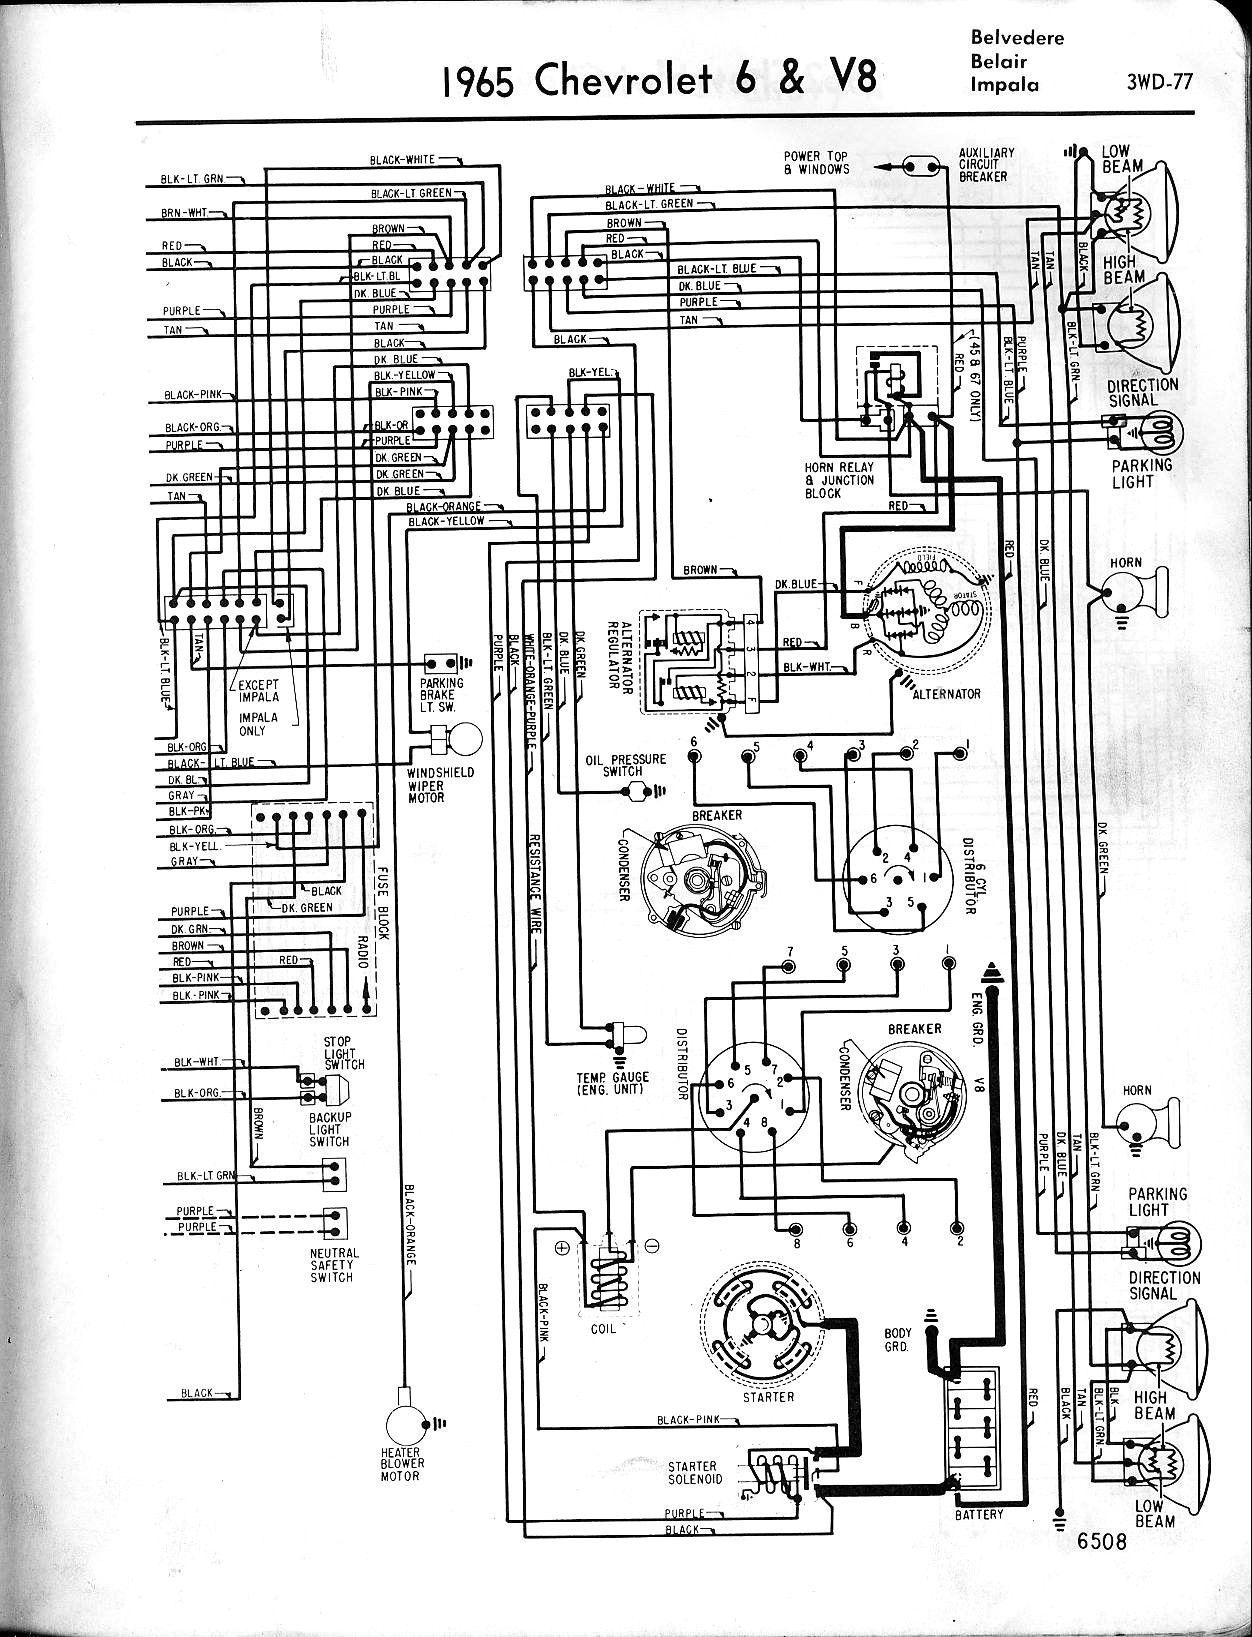 28 Stunning Wiring Diagram For Light Switch References Electrical Diagram Diagram Impala